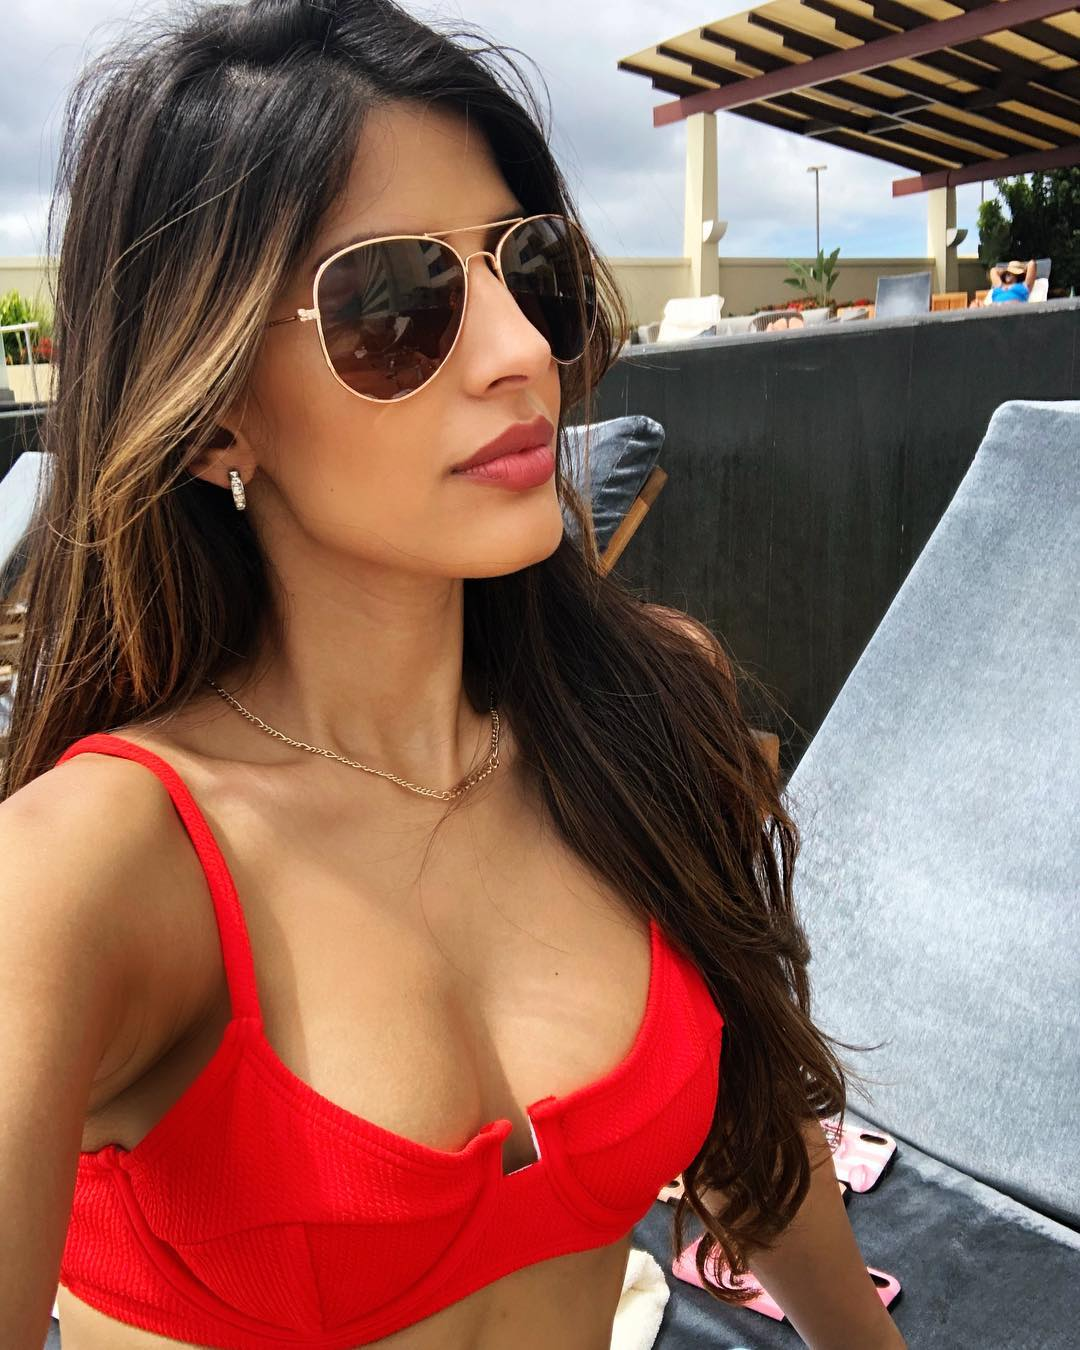 Jasmine walia  IMAGES, GIF, ANIMATED GIF, WALLPAPER, STICKER FOR WHATSAPP & FACEBOOK